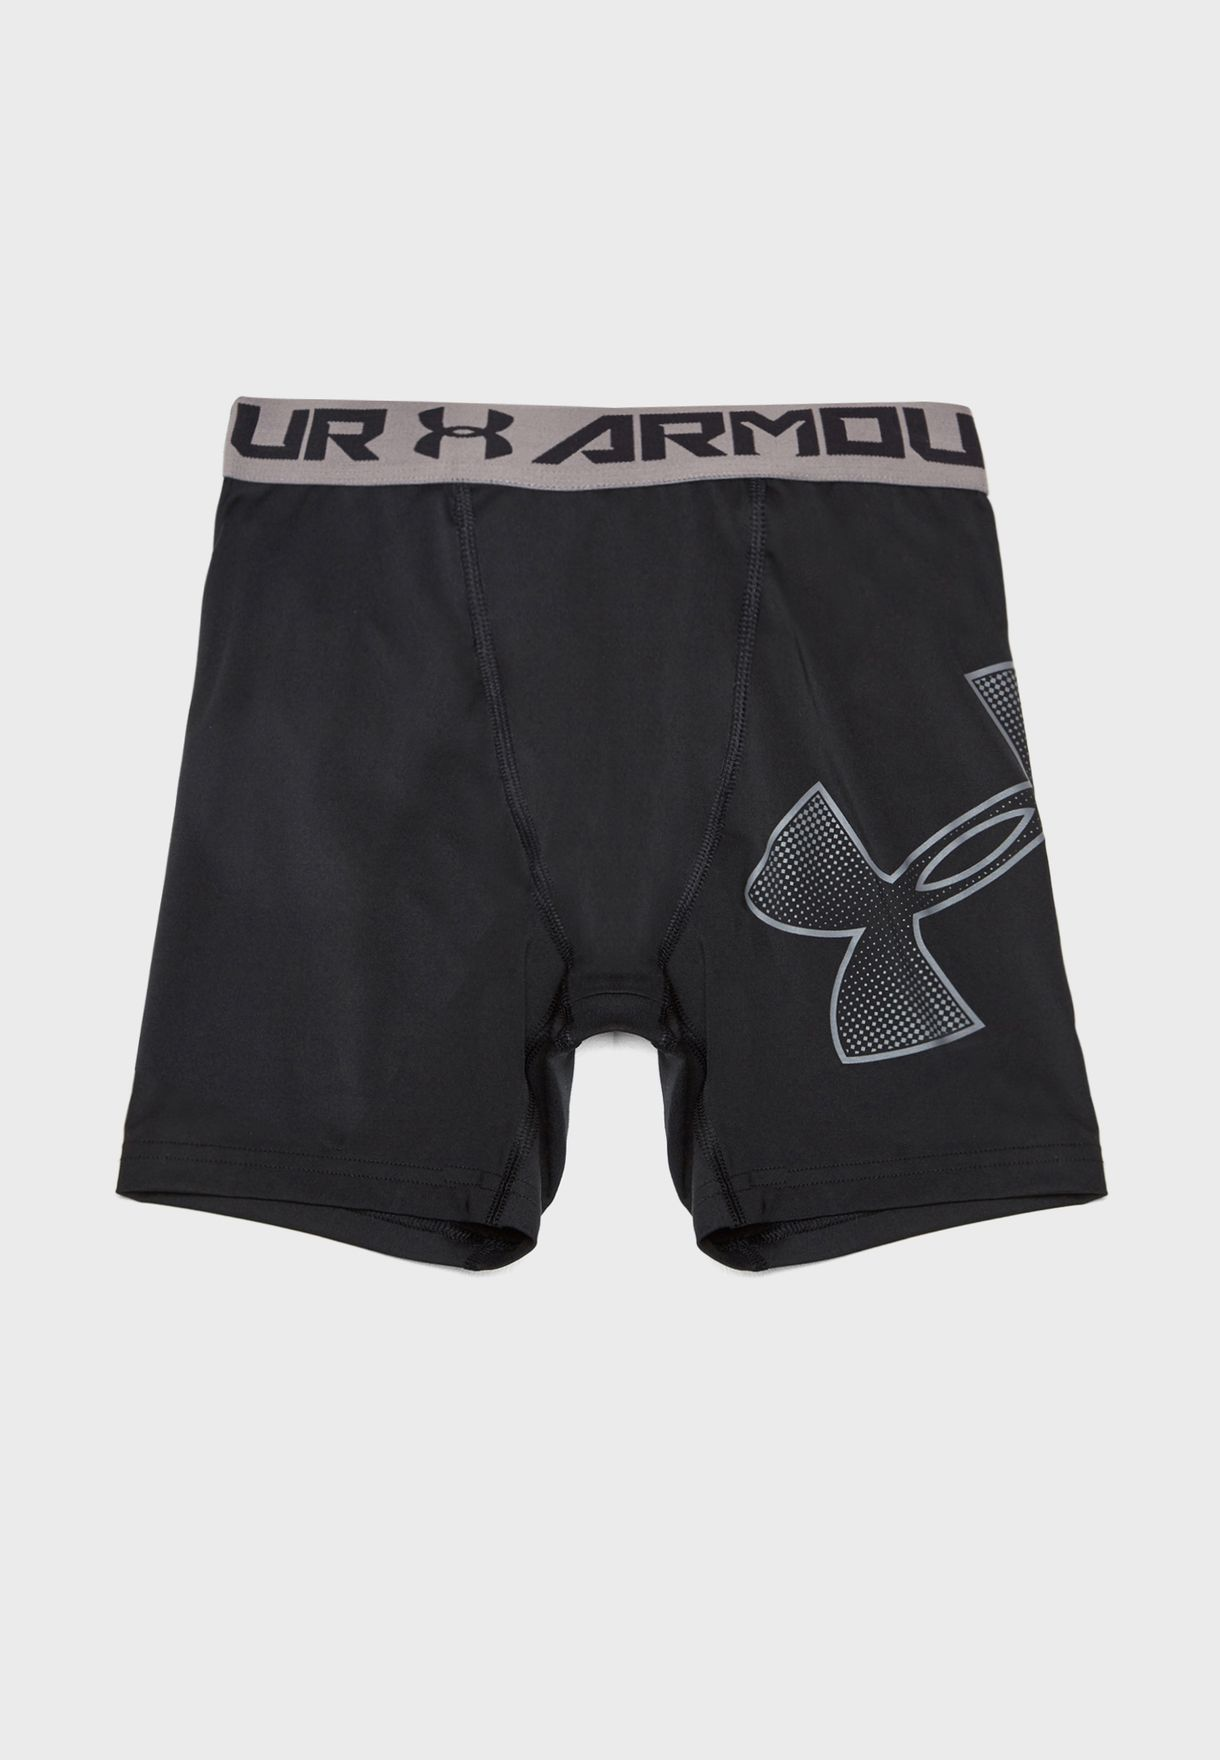 Shop Under Armour black Youth Logo Shorts 1289960-003 for Kids in Saudi -  UN700AT89TVA 5a0a2b51e3abd